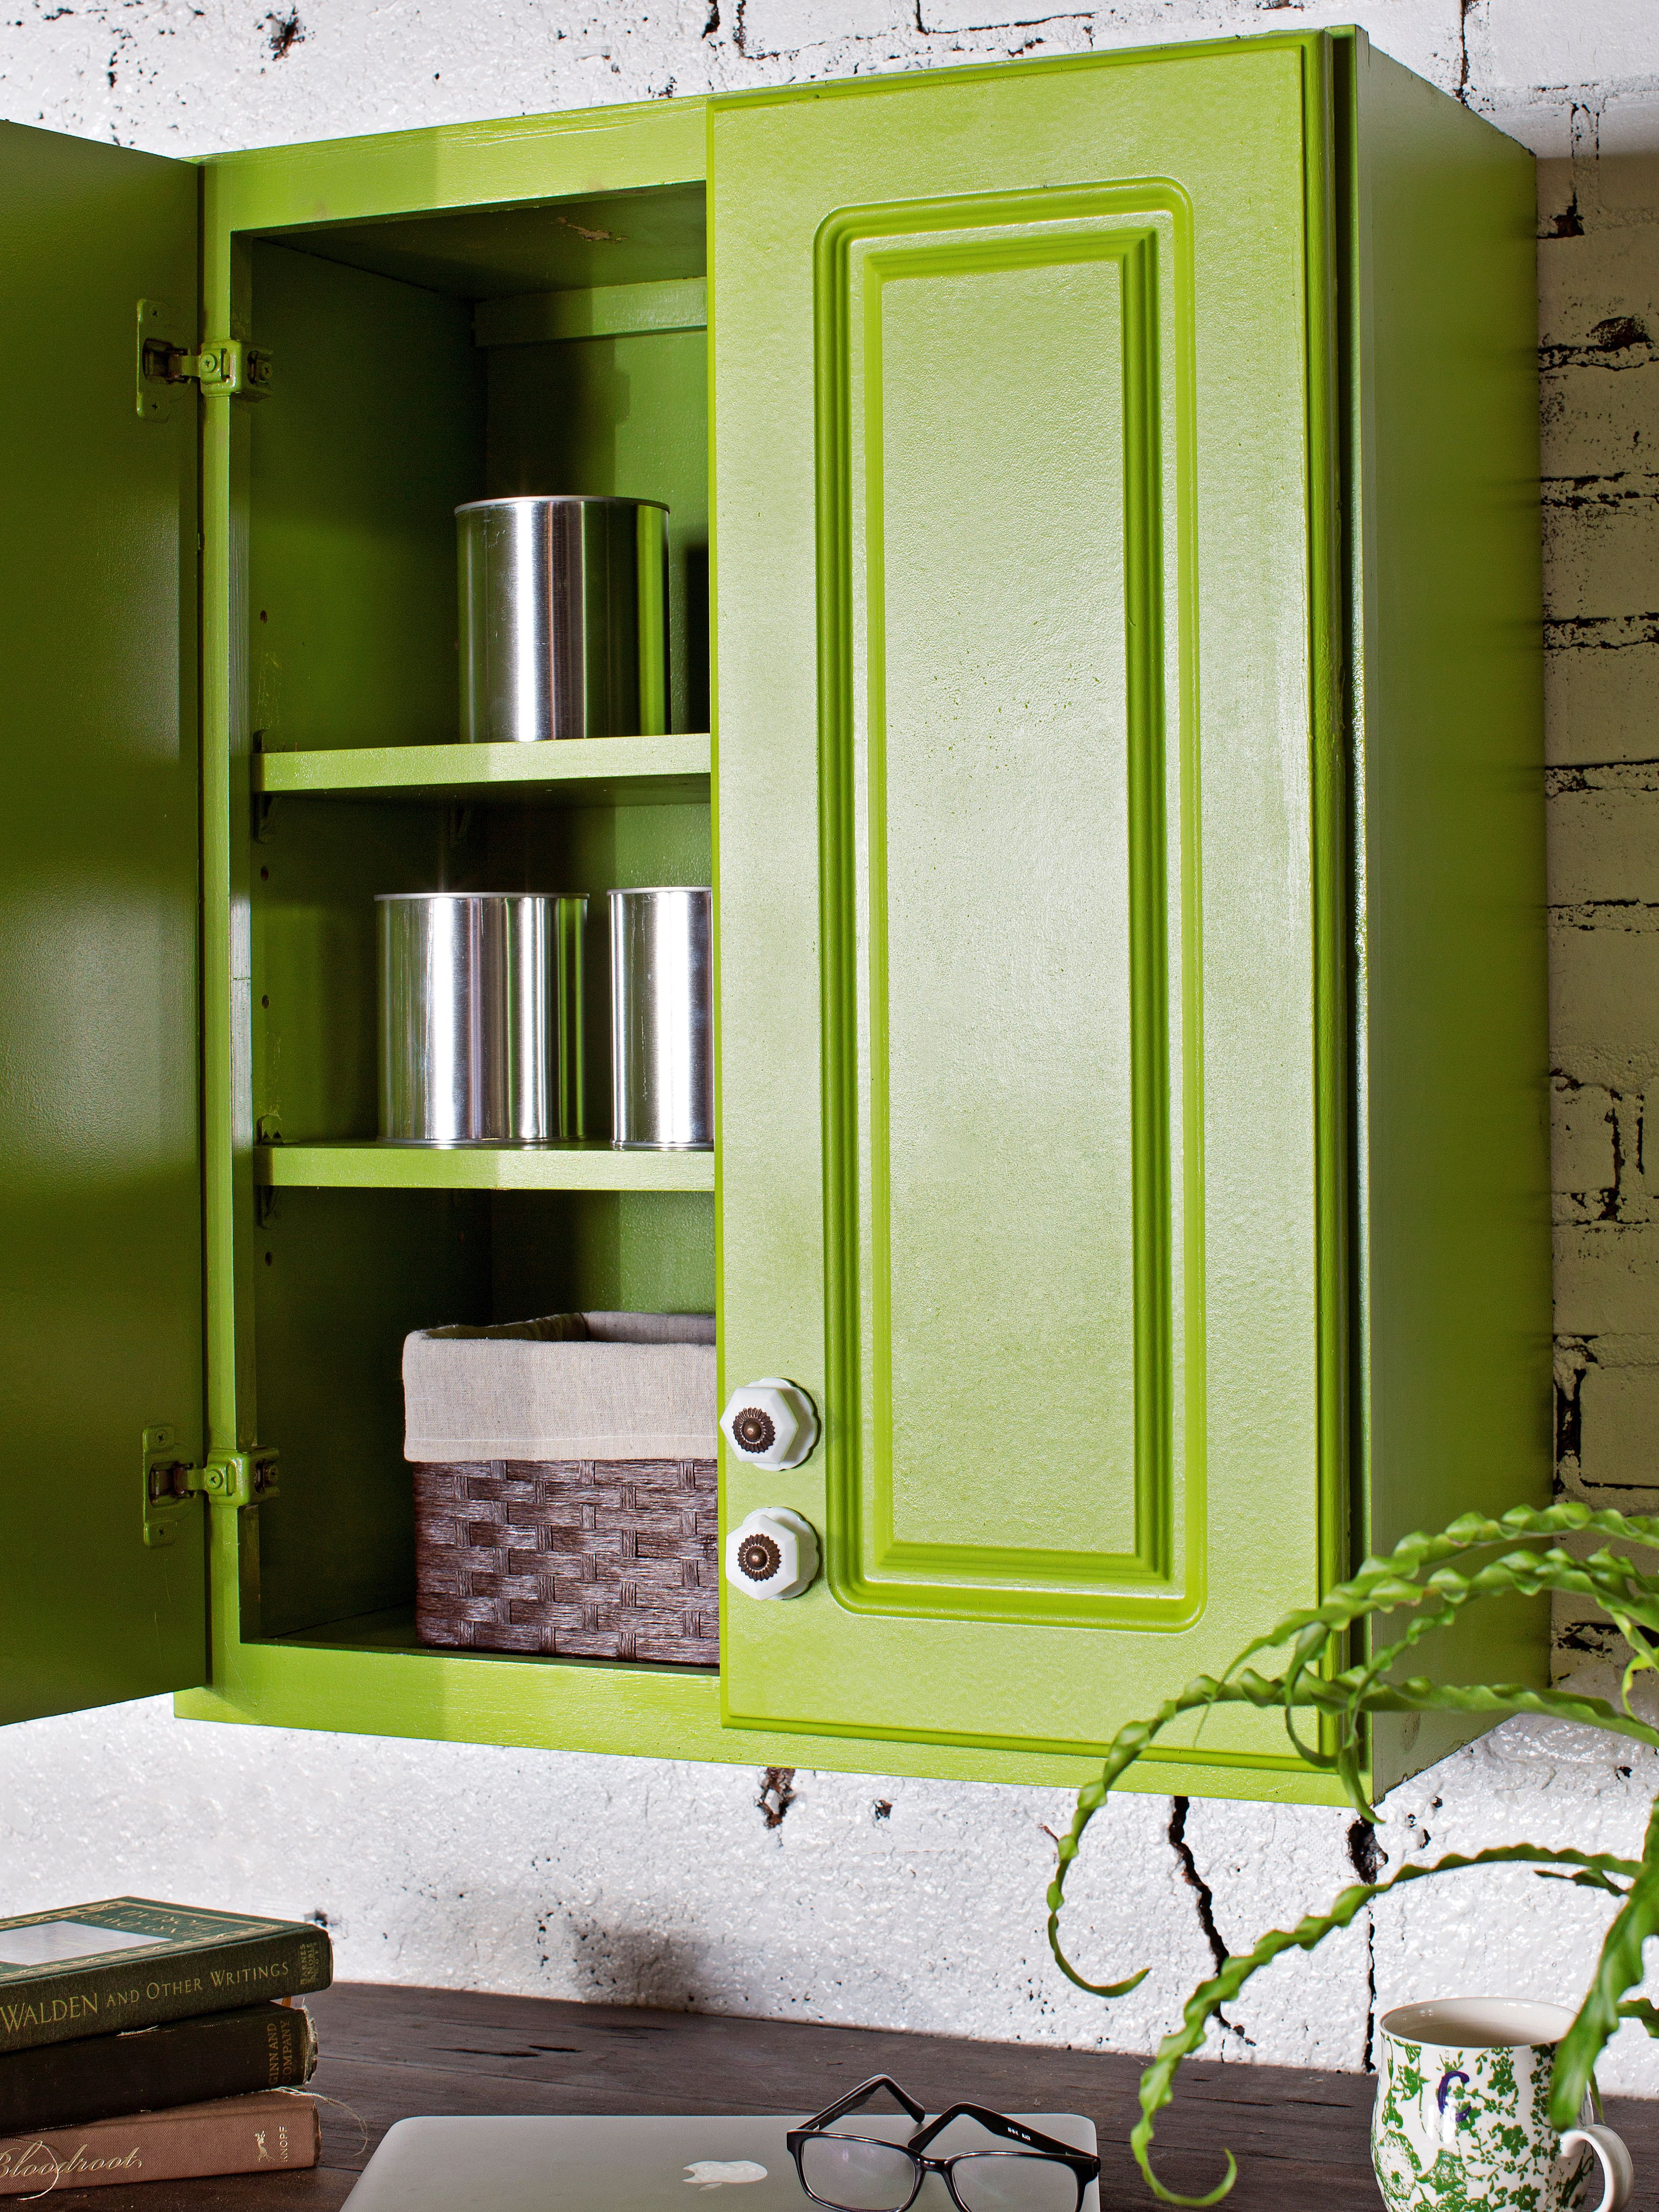 How To Paint Kitchen Cabinets With A Sprayed On Finish Kitchens Baths Painting Kitchen Cabinets Diy Cabinets Et Kitchen Cabinets